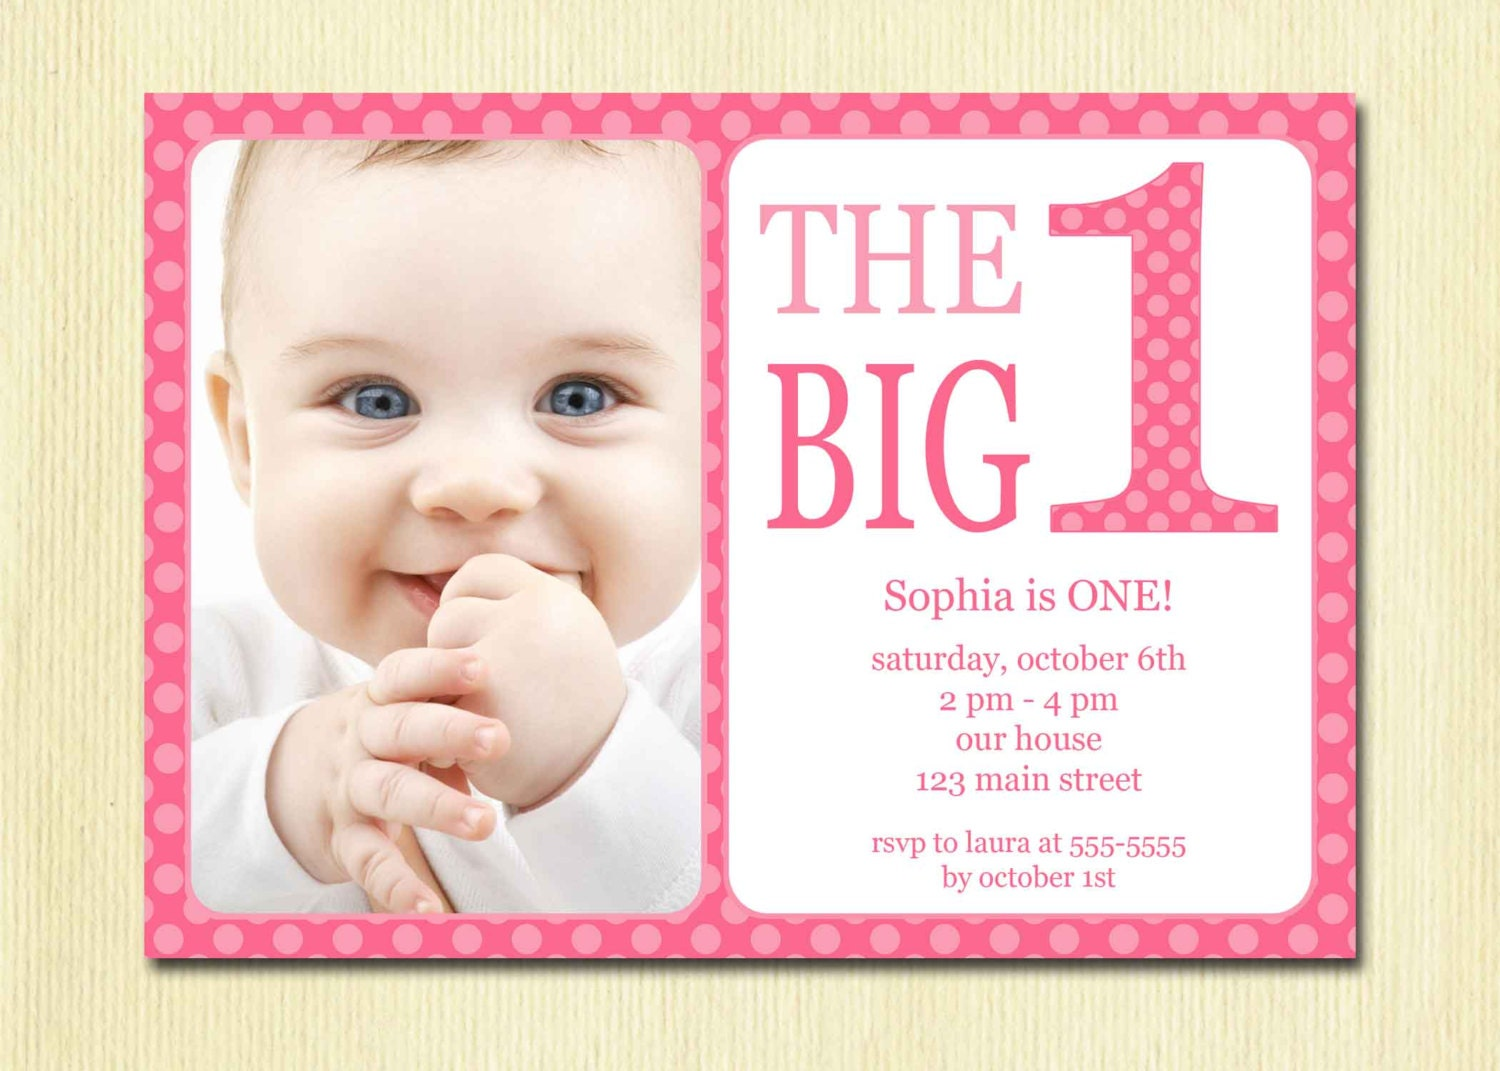 Baby girl birthday invitation card yeniscale baby girl birthday invitation card first birthday baby girl invitation stopboris Image collections